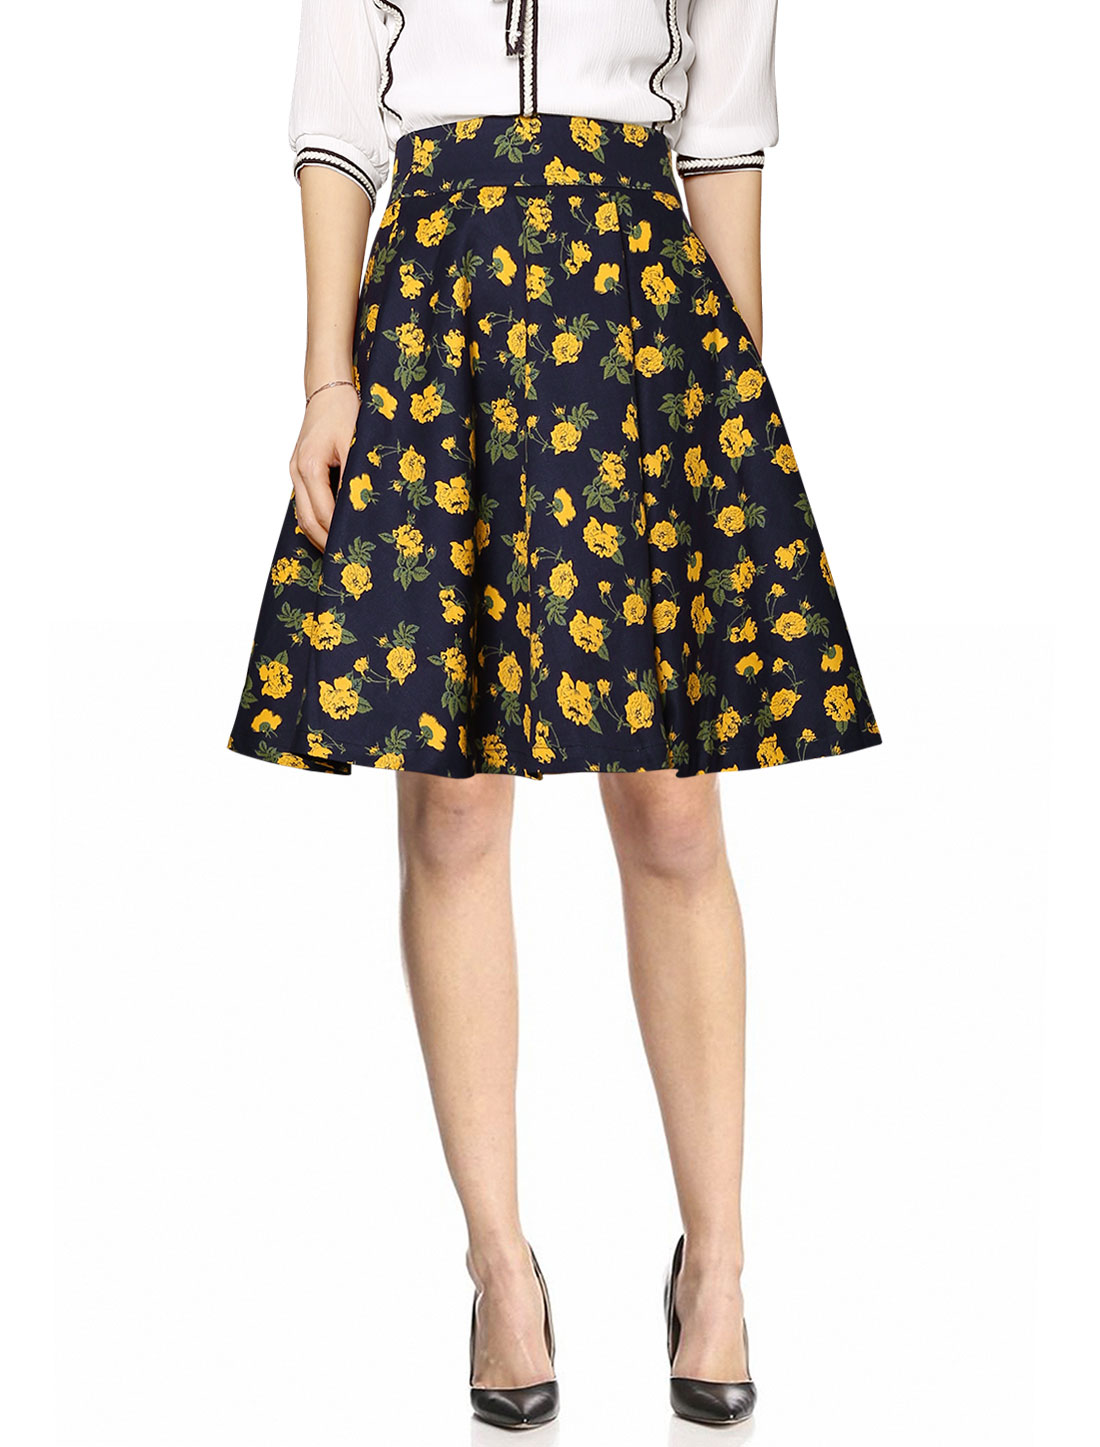 Women Floral Print Casual Above Knee Vintage Skirts Navy Blue Yellow XS